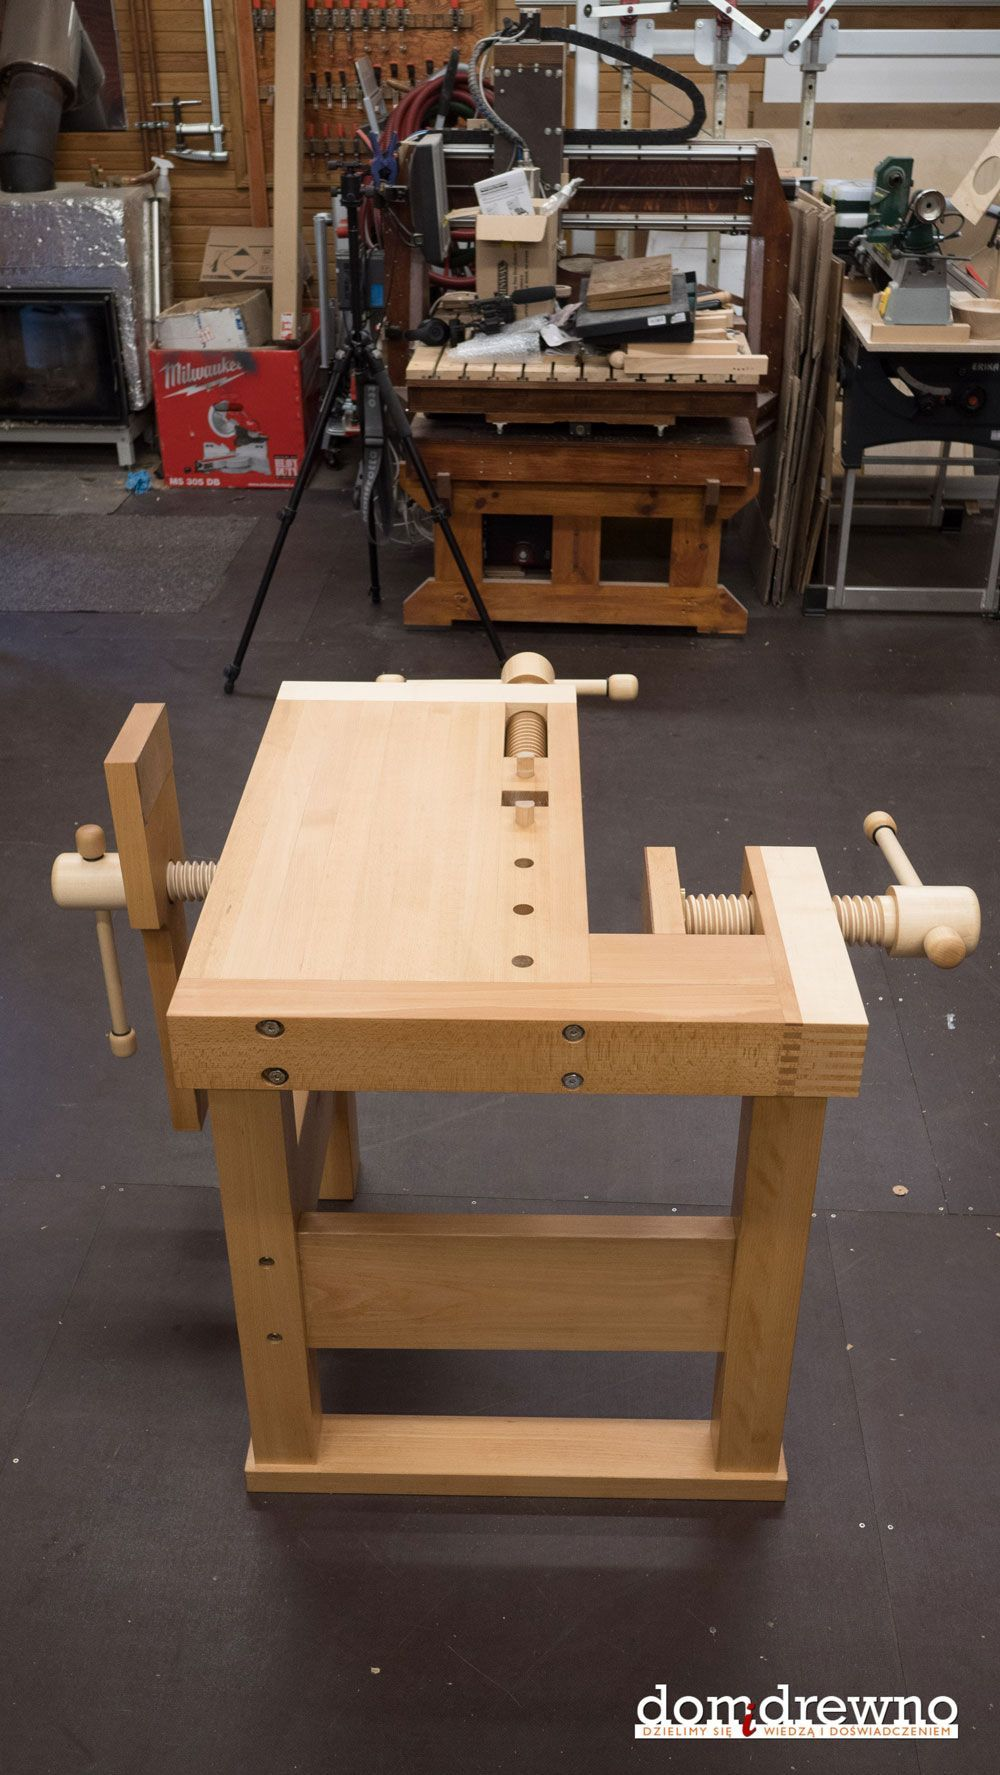 Awe Inspiring Lake Erie Toolworks Demo Bench Built By Domidrewno Picture Uwap Interior Chair Design Uwaporg